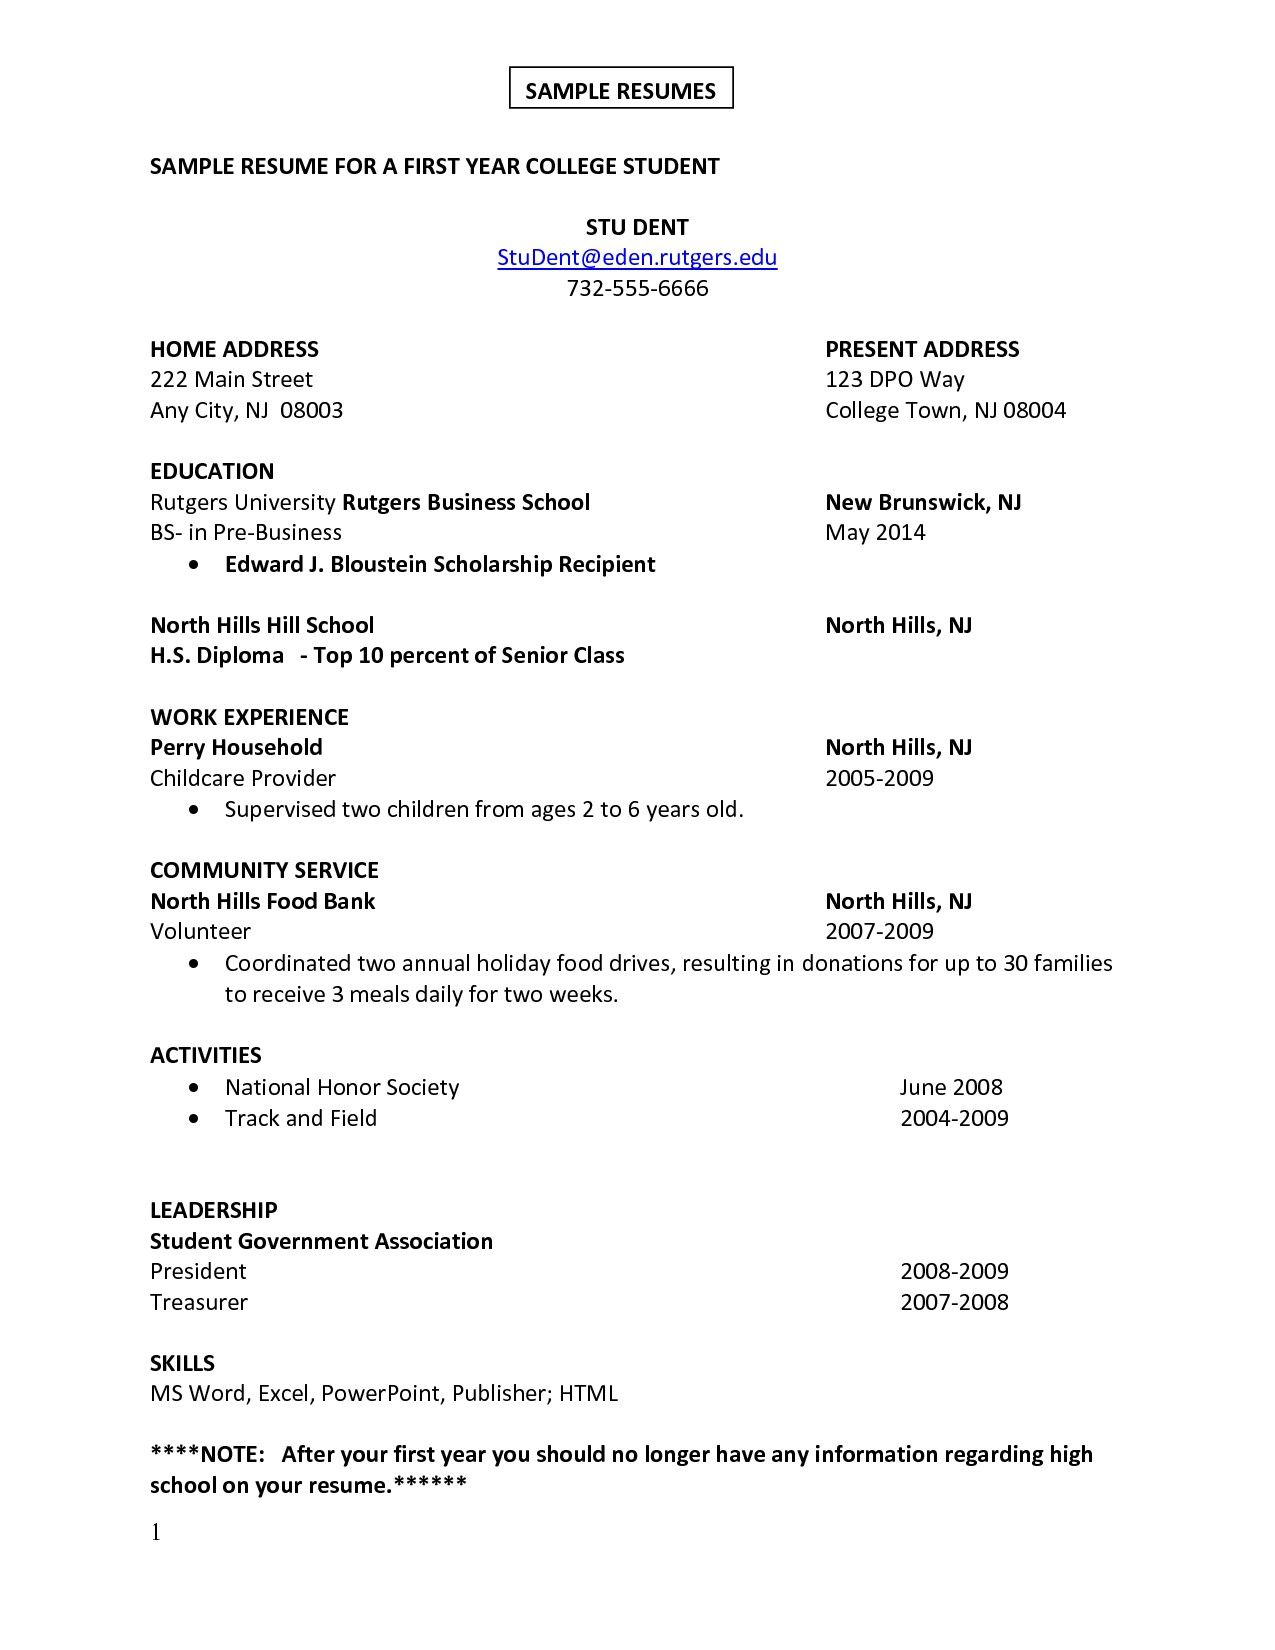 first job resume - Google Search | aivan roca andal | Pinterest